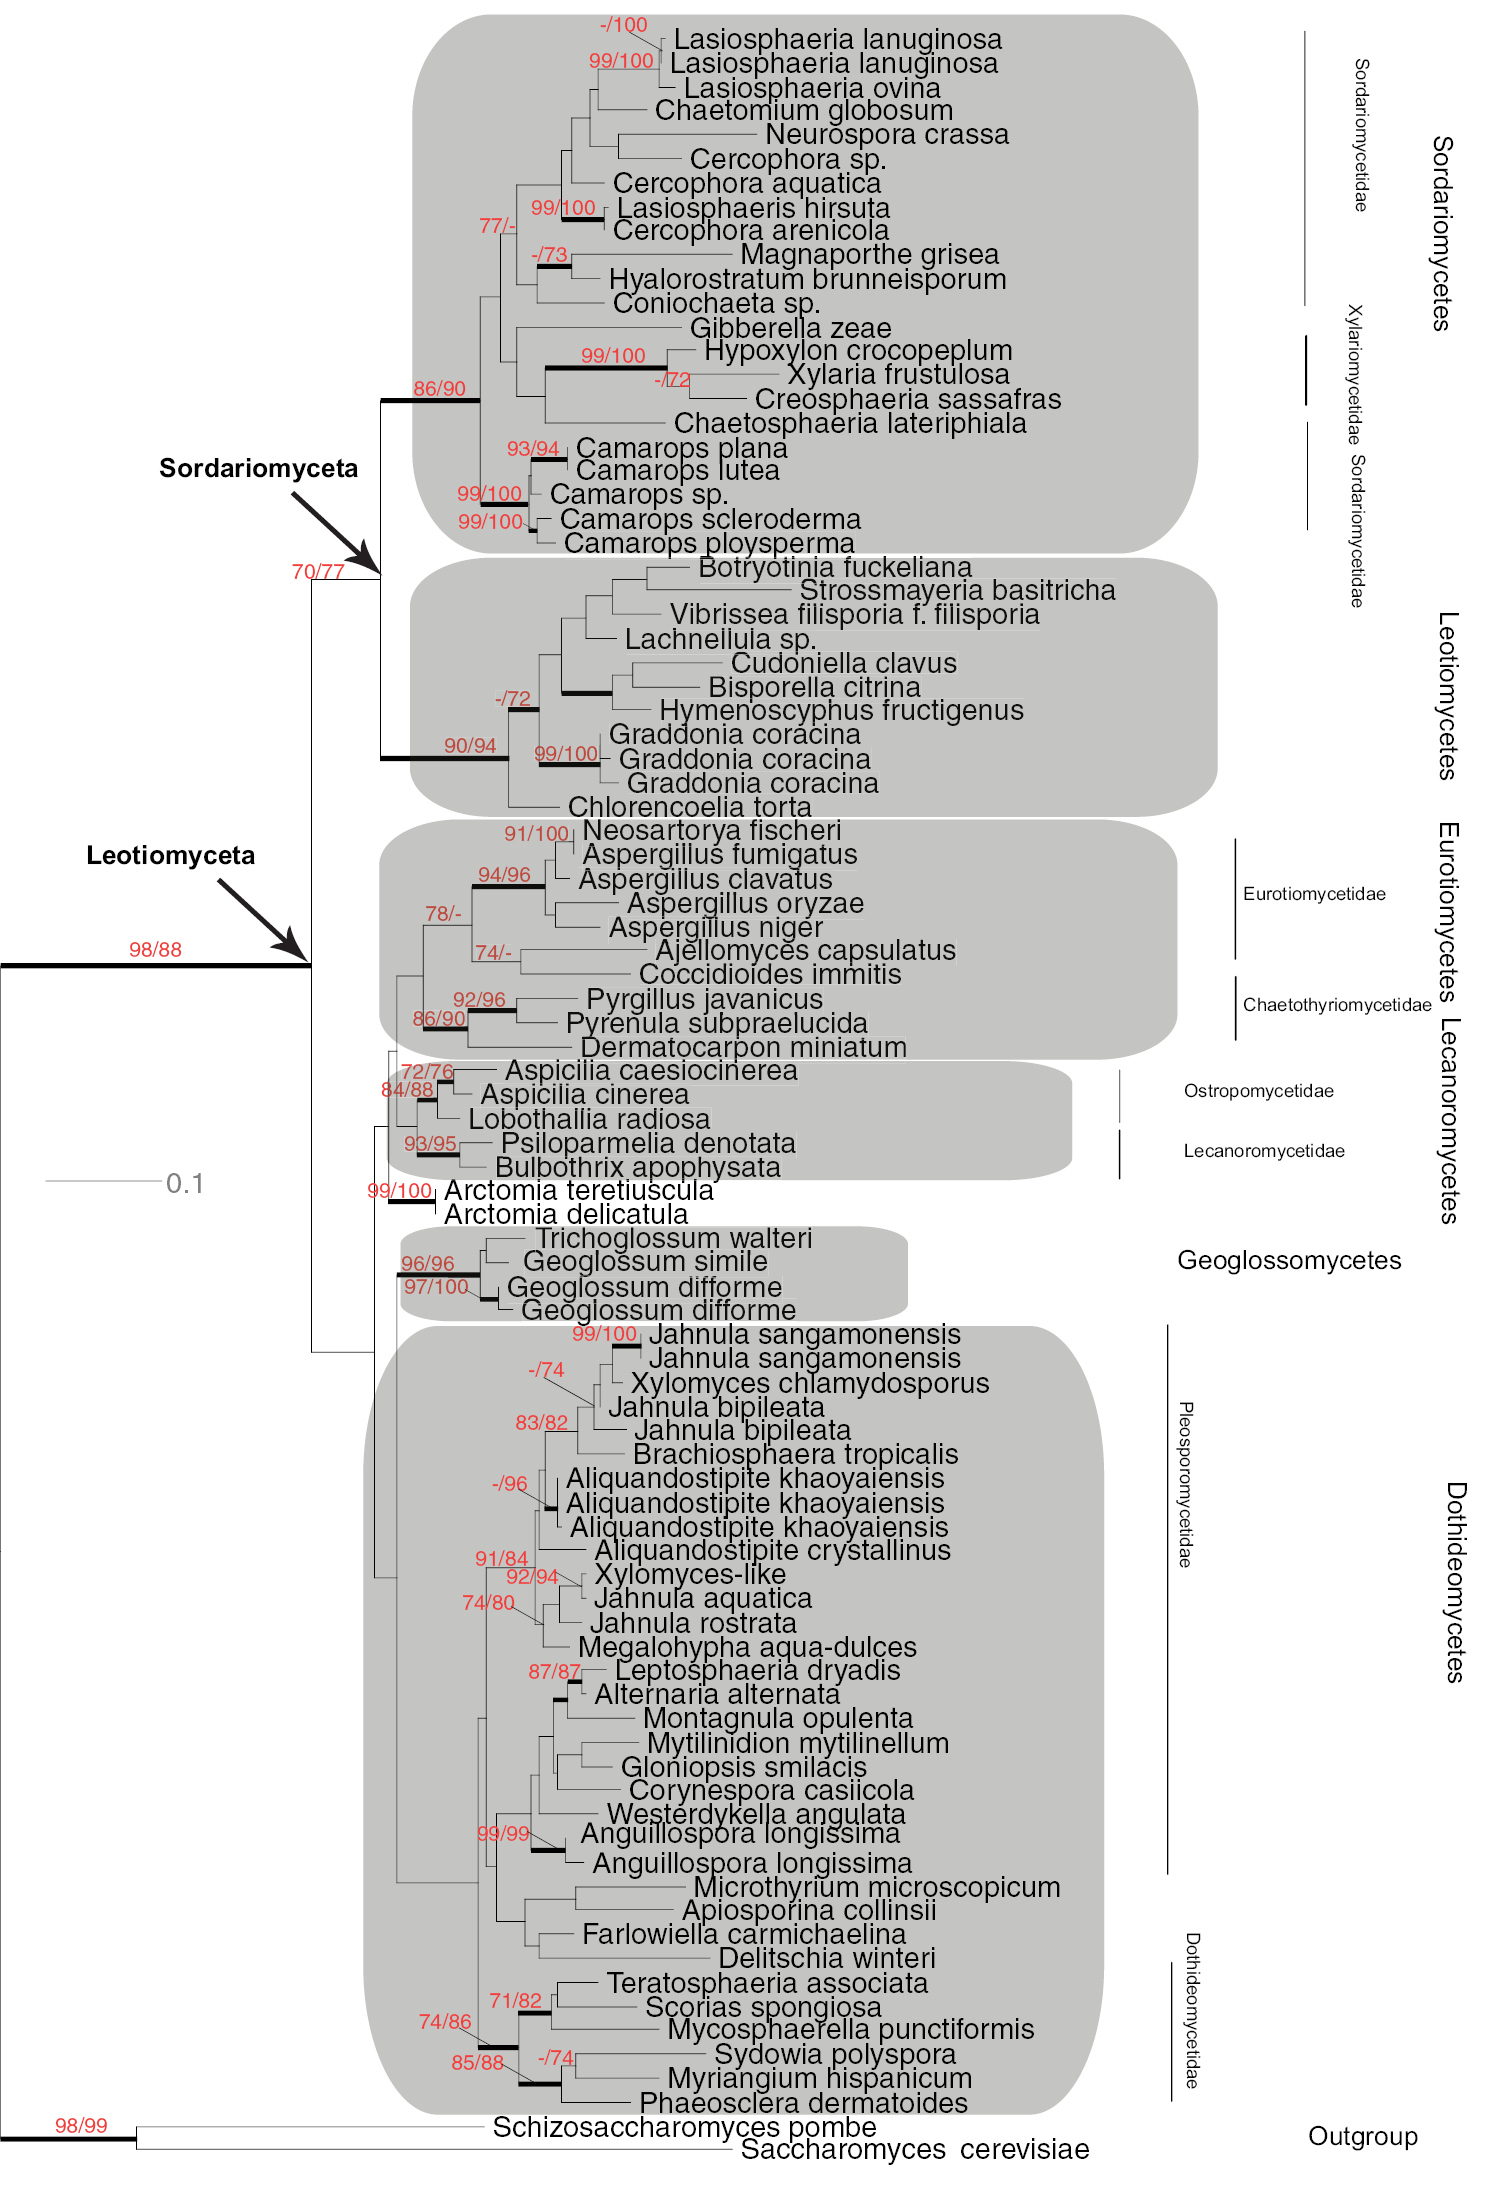 Testing the phylogenetic utility of MCM7 in the Ascomycota